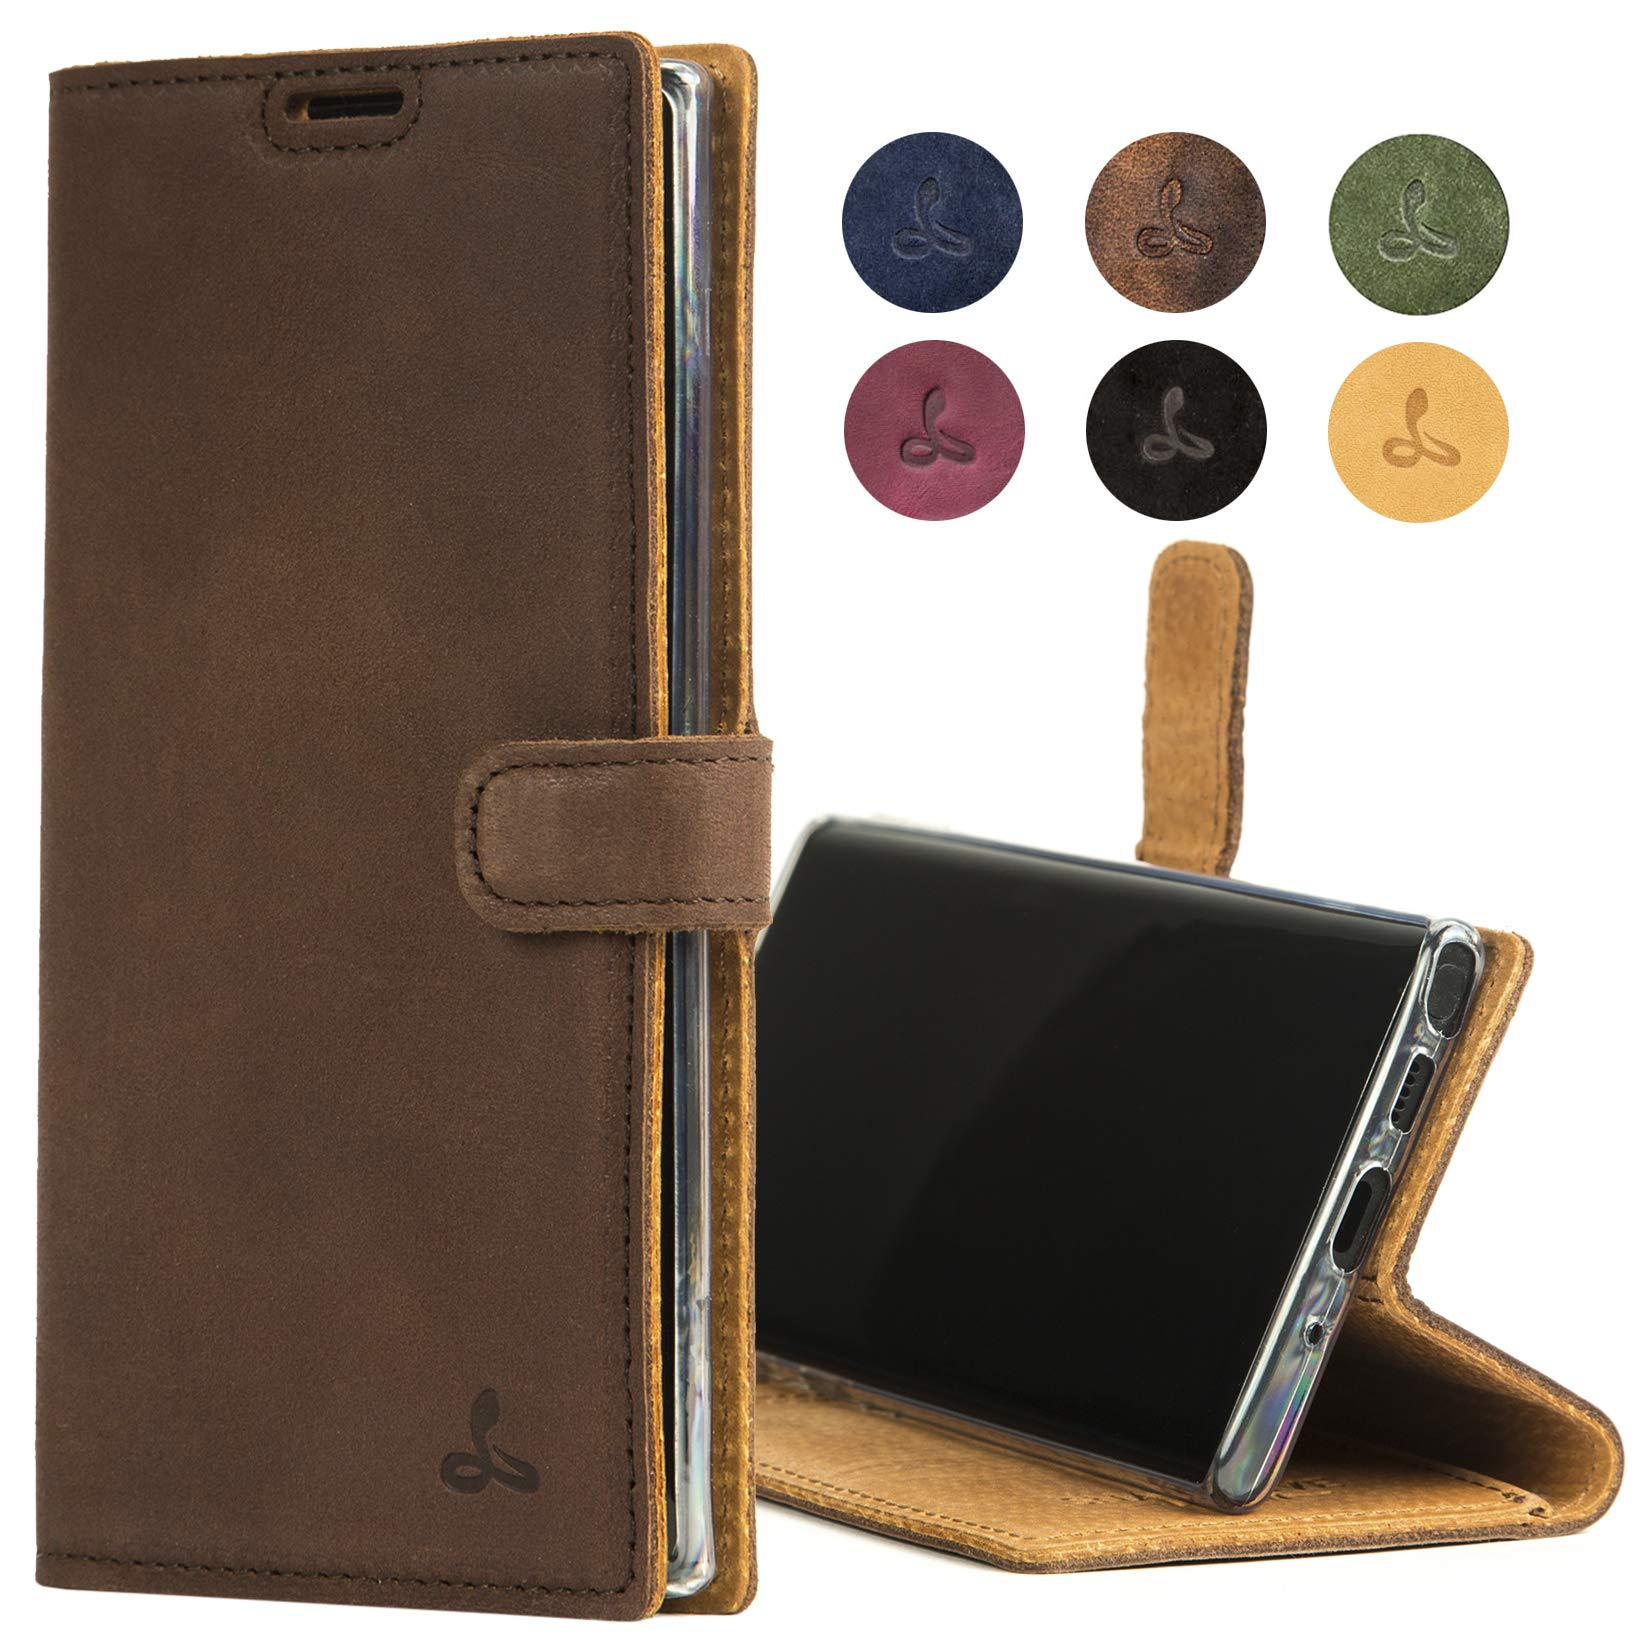 Samsung Galaxy Note 10 Plus Case, Genuine Leather Wallet Viewing Stand Card Slots, Flip Cover Gift Boxed Handmade in Europe Samsung Galaxy Note 10+ (Brown) by Snakehive